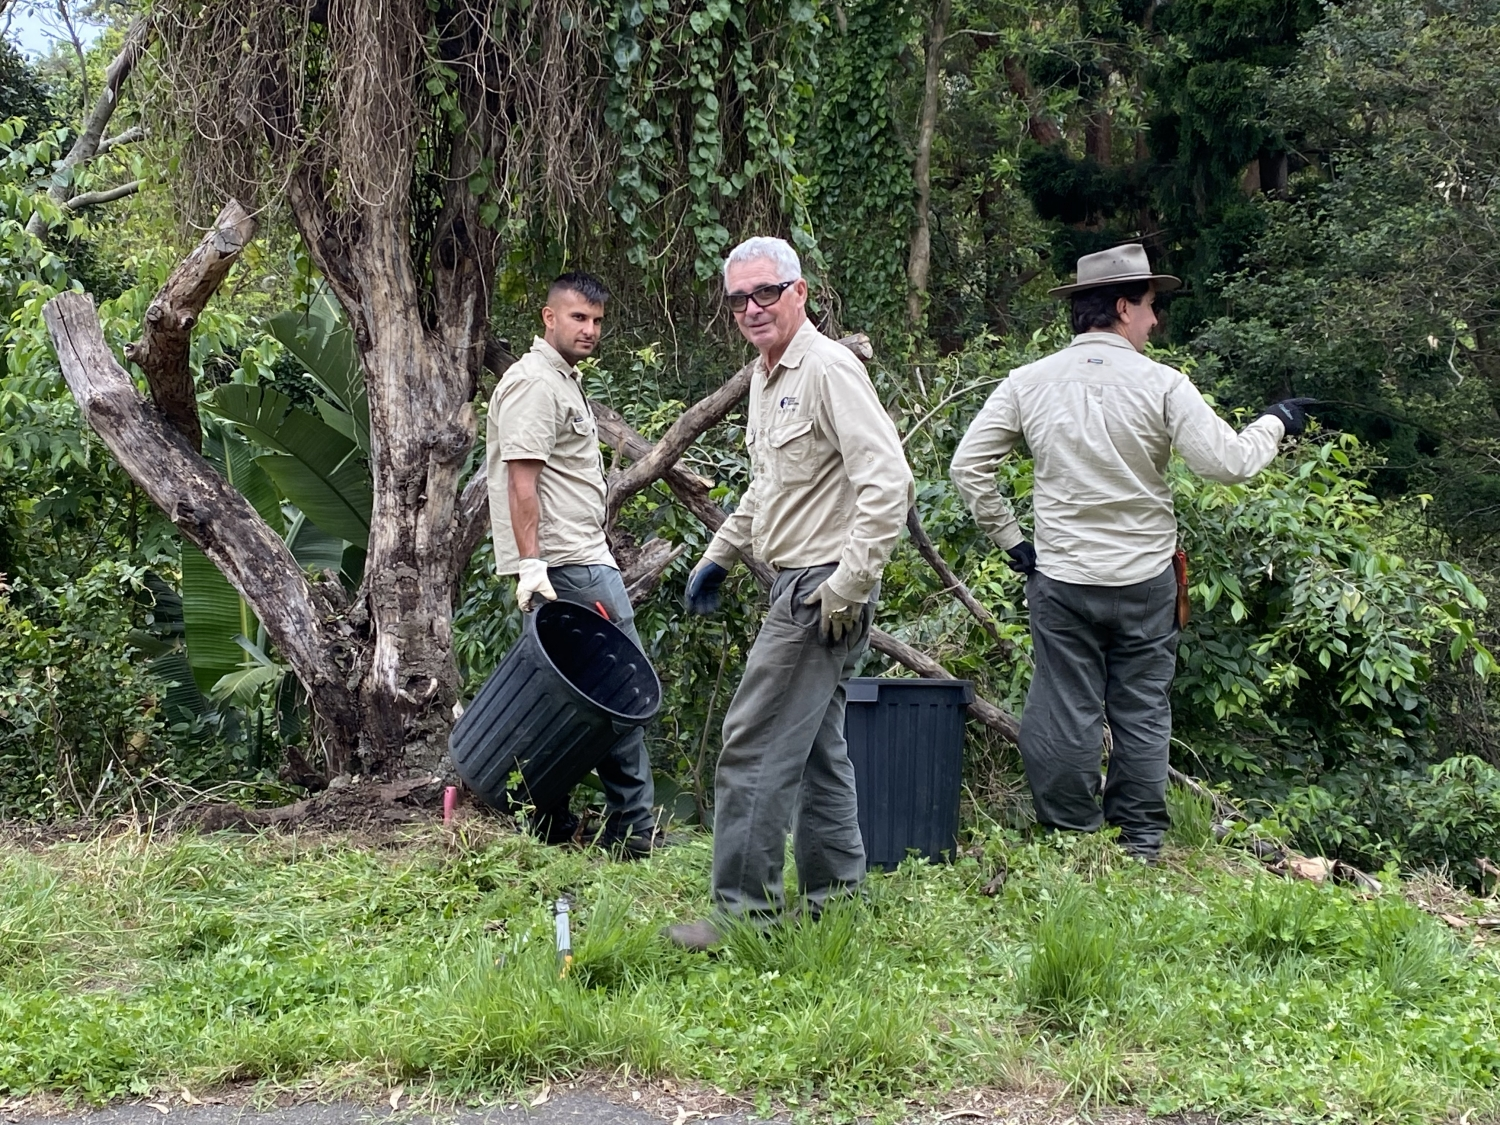 Three Horticulture members stand infront of the bush curtilage at Vaucluse house. they are filling bins with weeds.